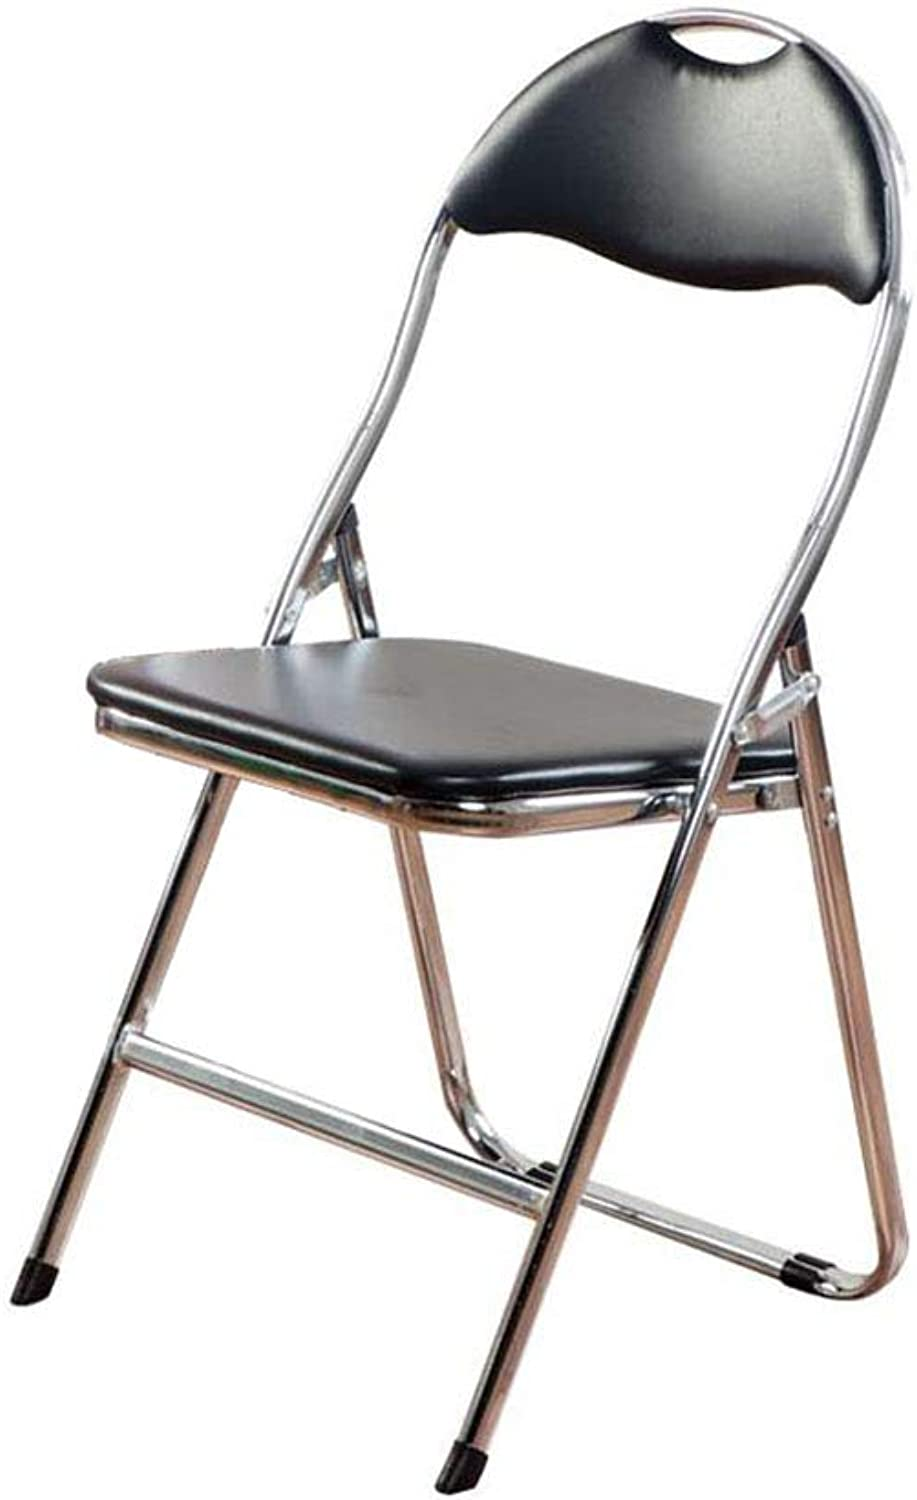 Folding Chair Desk Chair Office Reception Black Padded Steel+Faux Leather